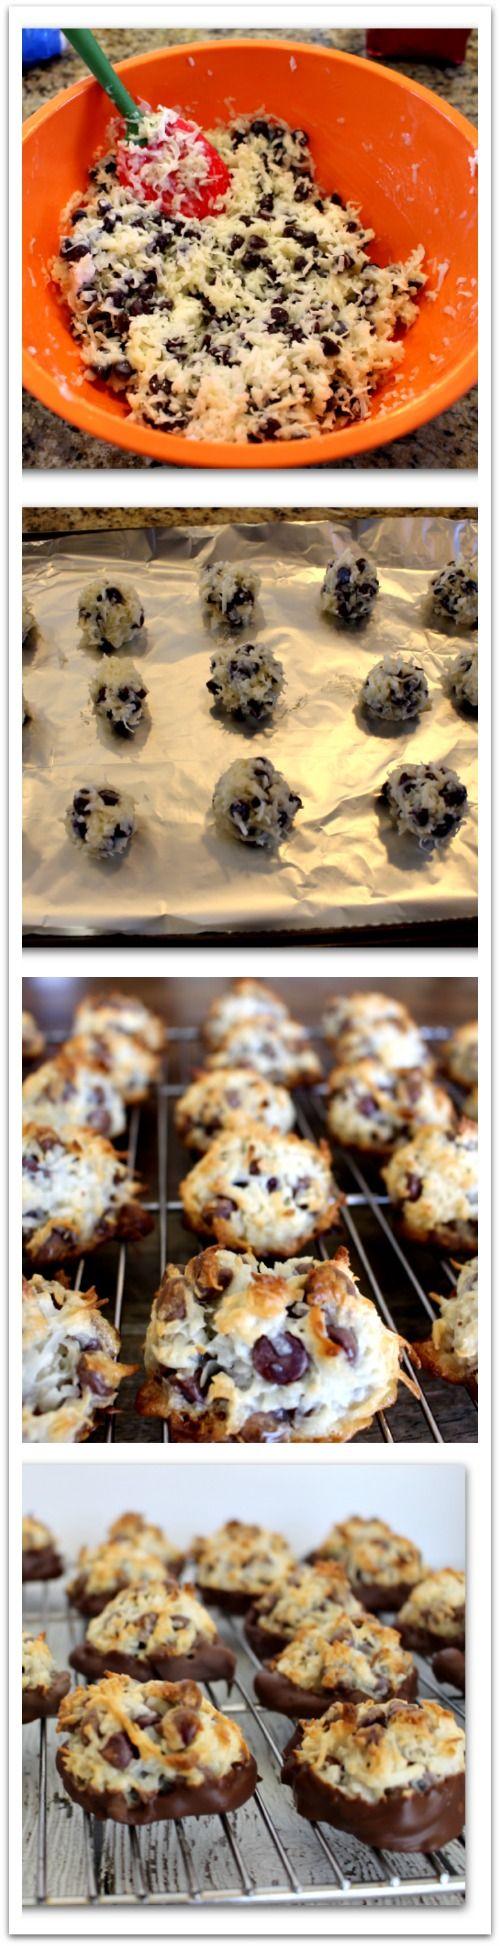 Chocolate Dipped Chocolate Chip Macaroon Recipe